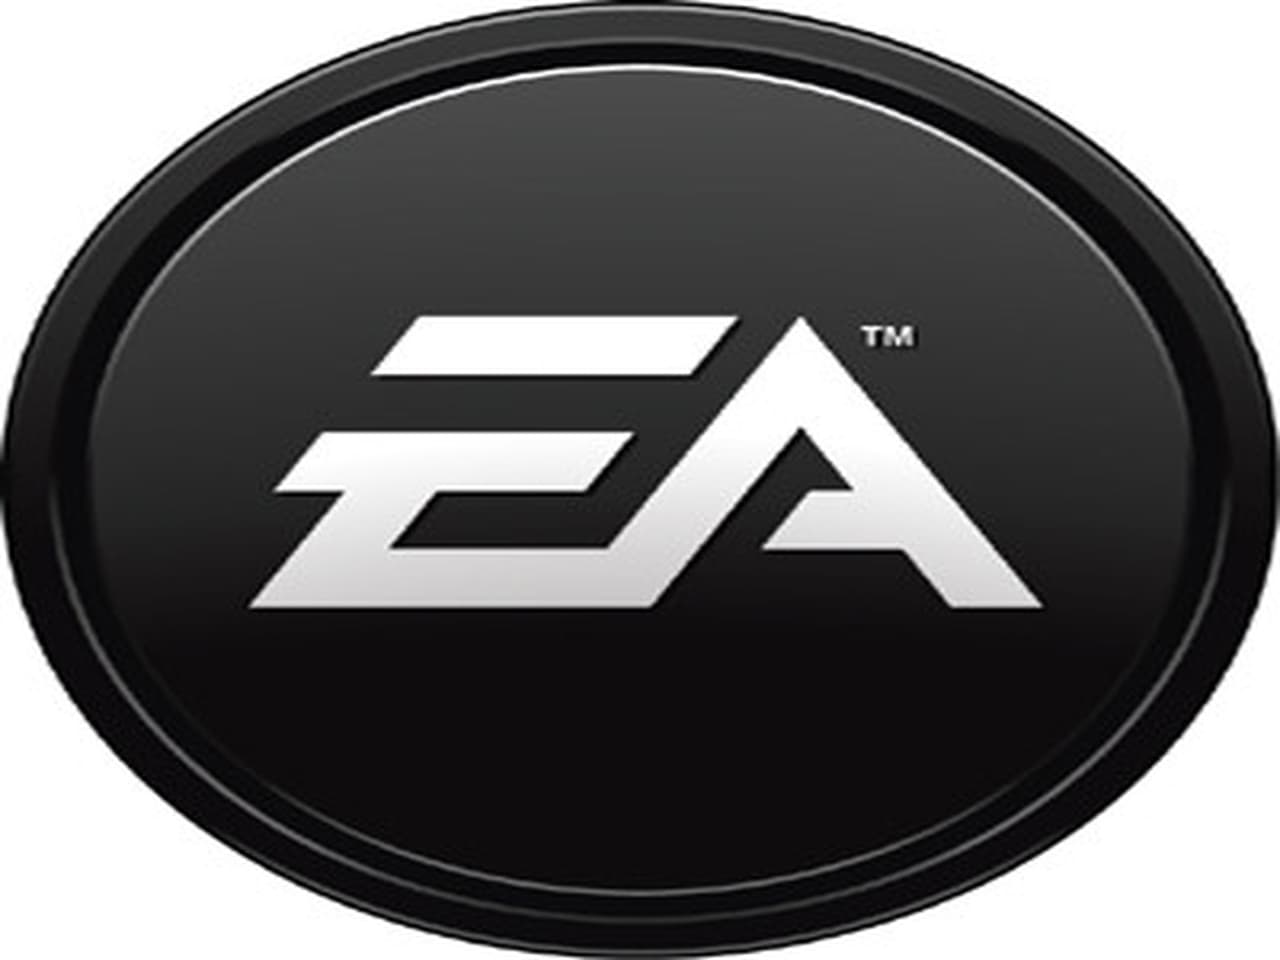 electronic arts executive summary Electronic arts q3 18 earnings conference call at 5:00 pm et earnings summary: details of electronic arts inc q3 vodafone non-executive director mathias.